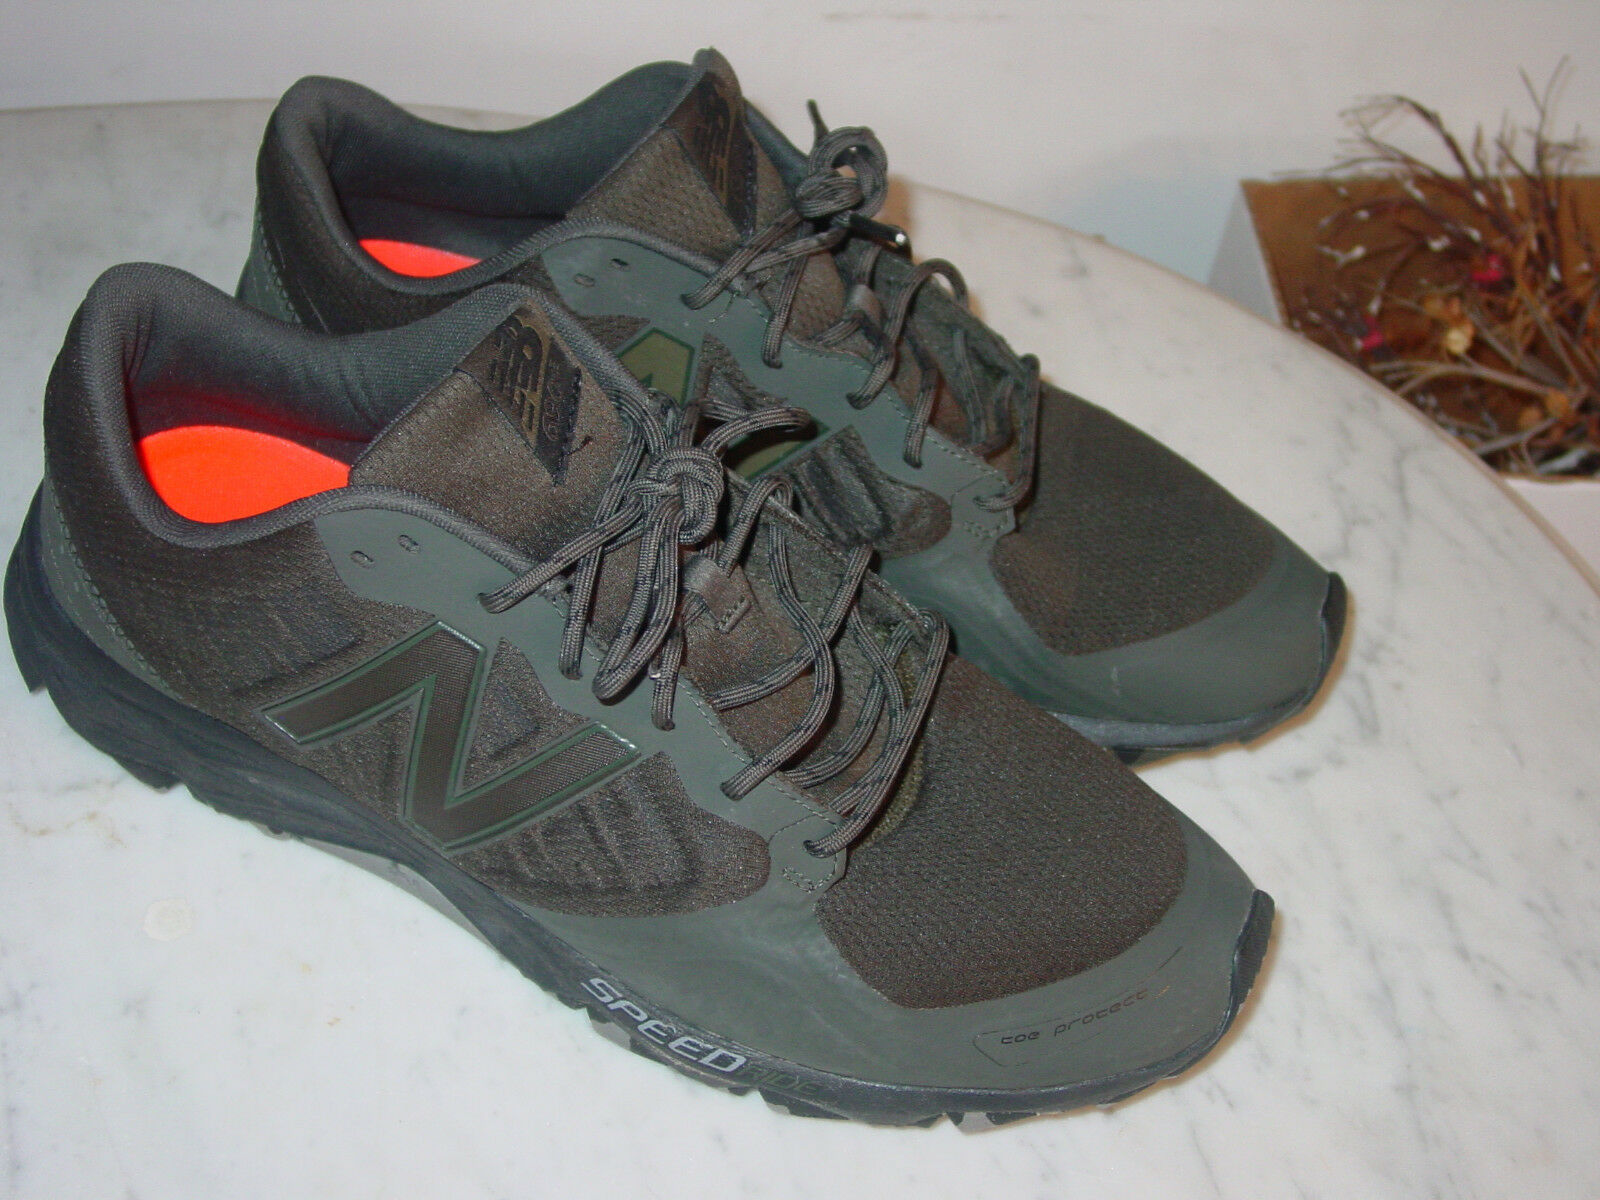 2017 Mens New Balance T690V2  MT690RG2  Forest Green Trail Running shoes Size 14